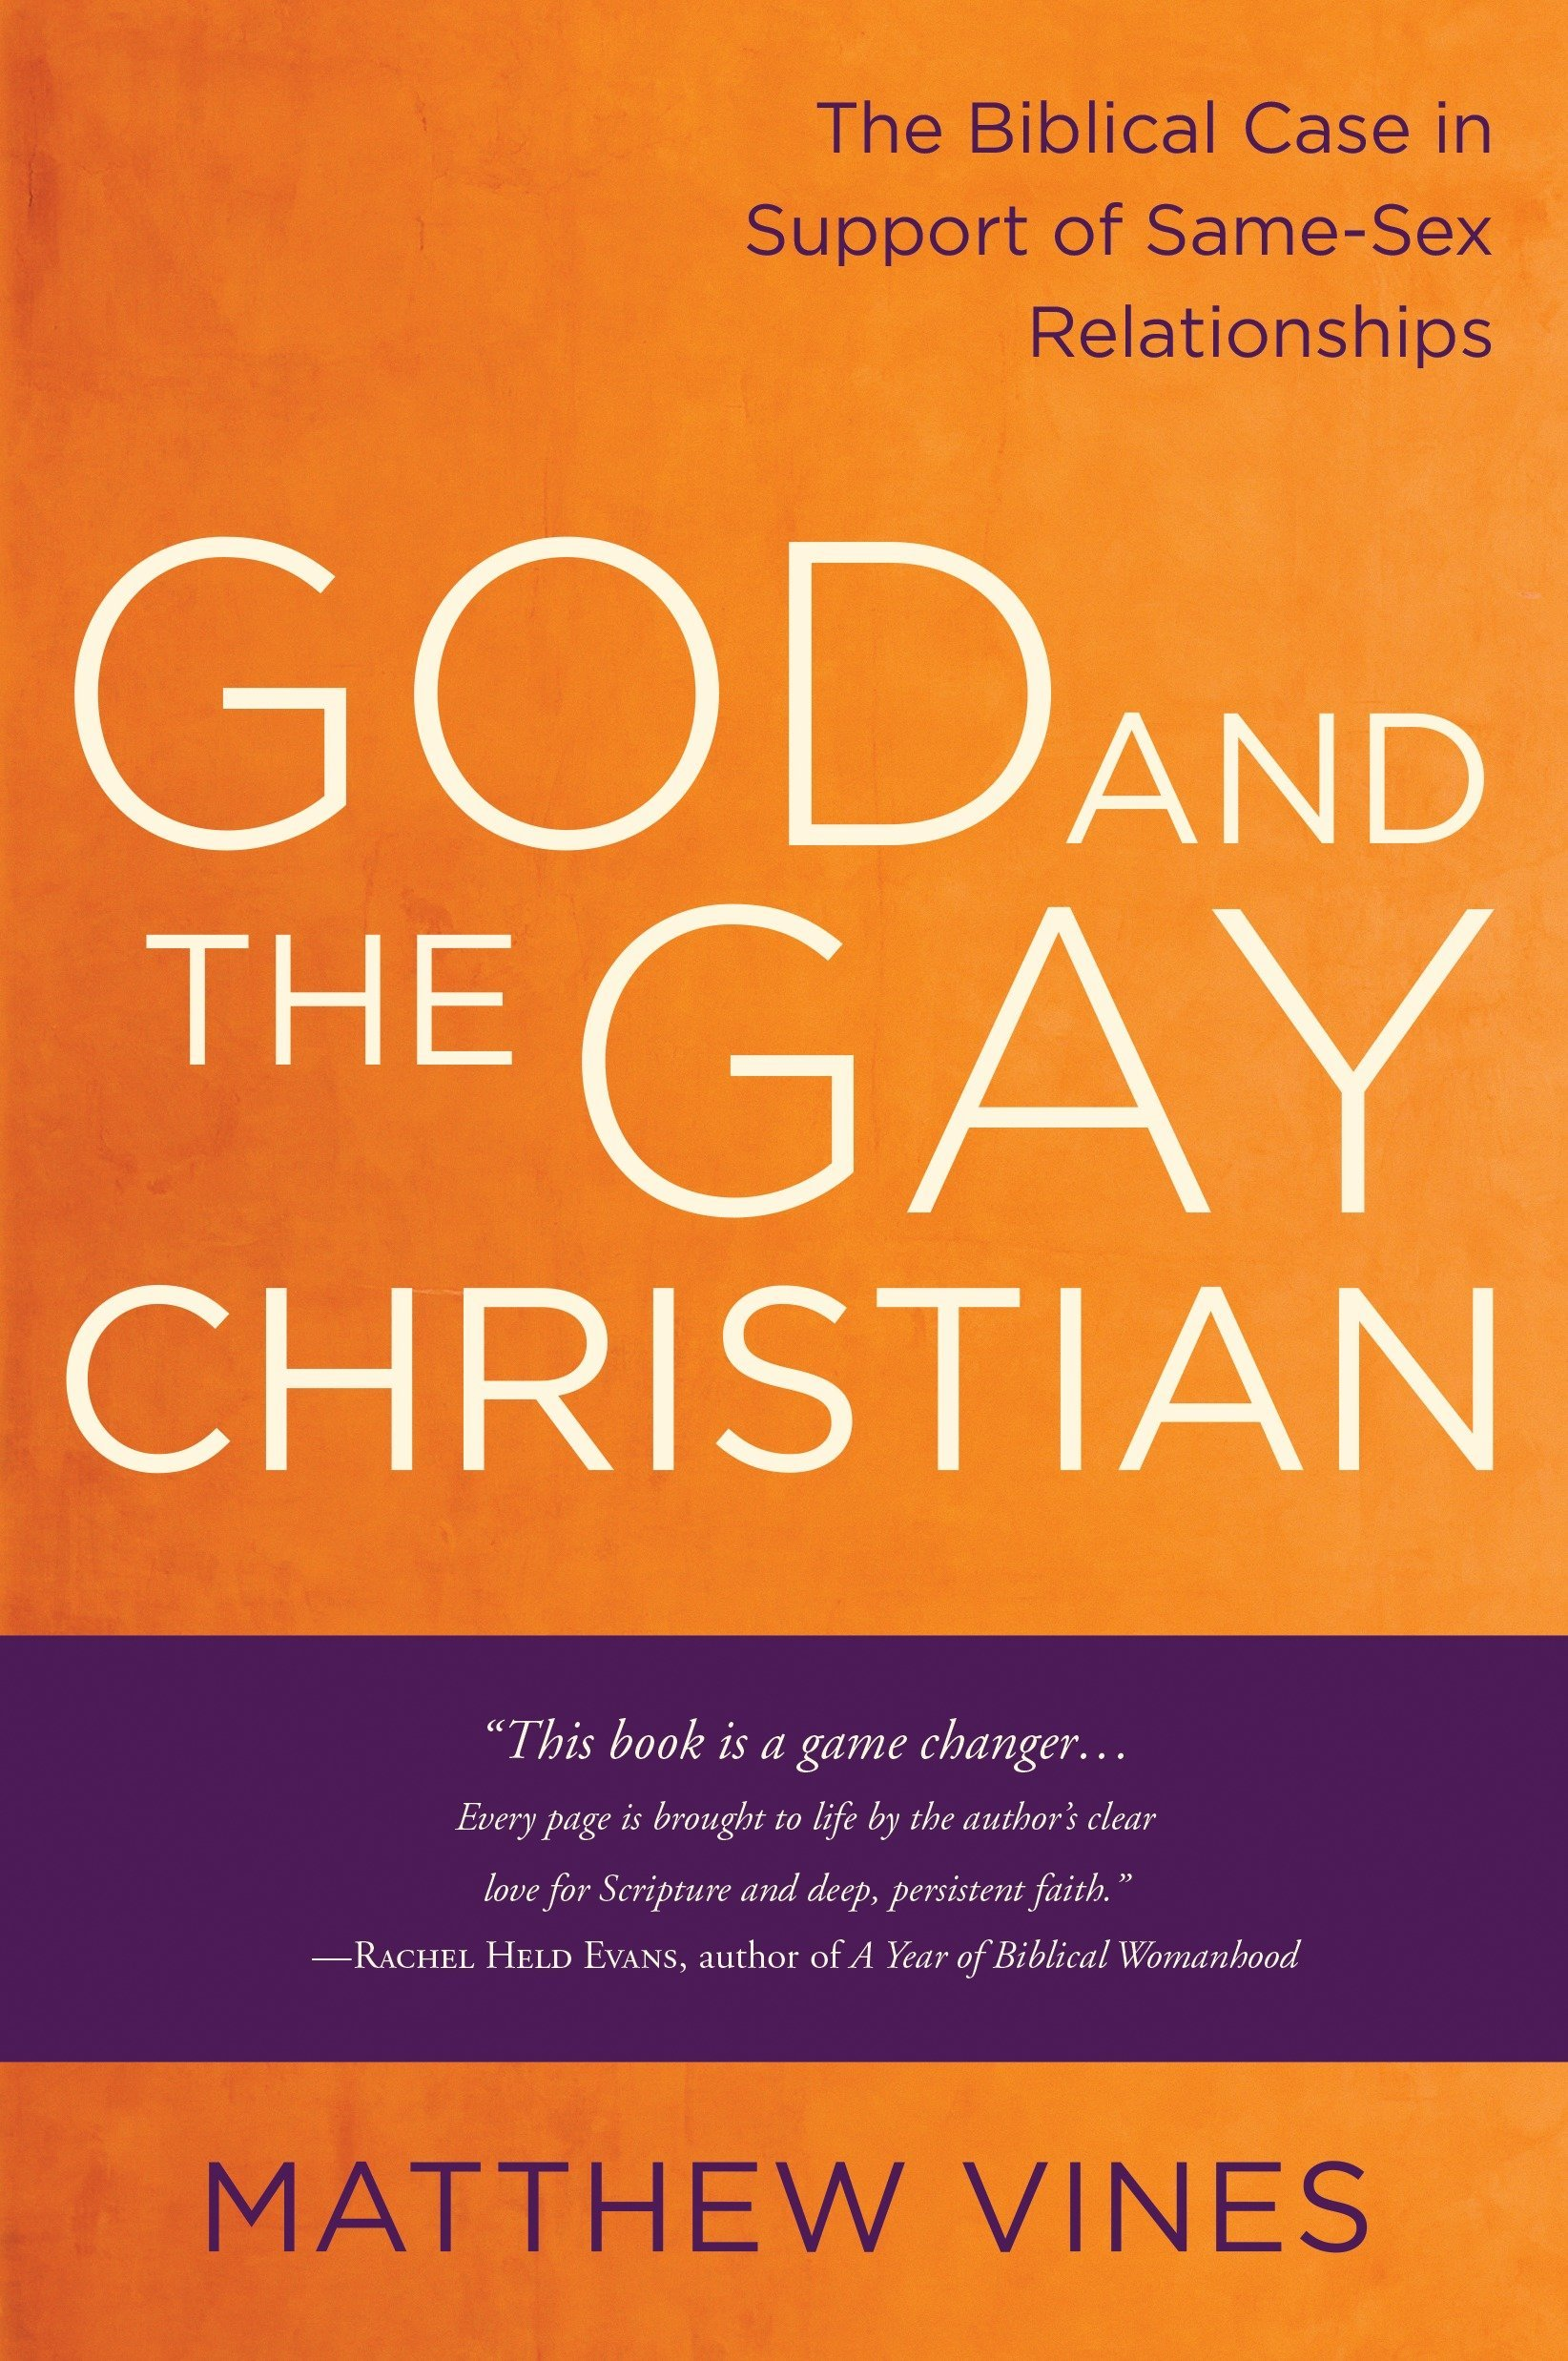 Christian reformed view on homosexuality